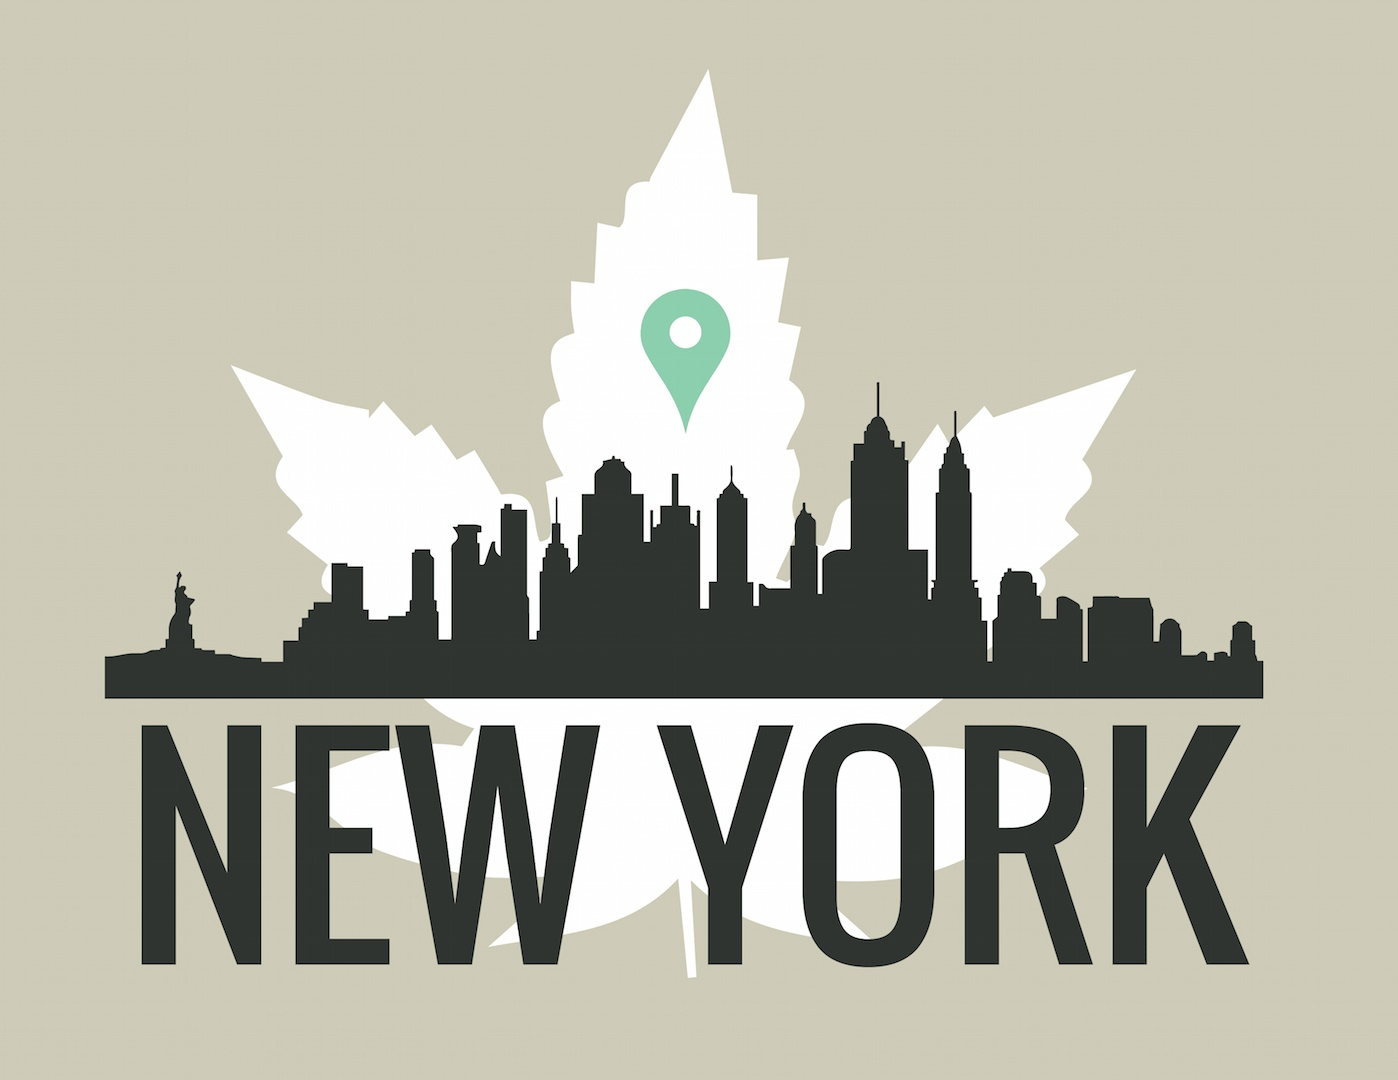 New York Seeks to Expand Access to Medical Cannabis